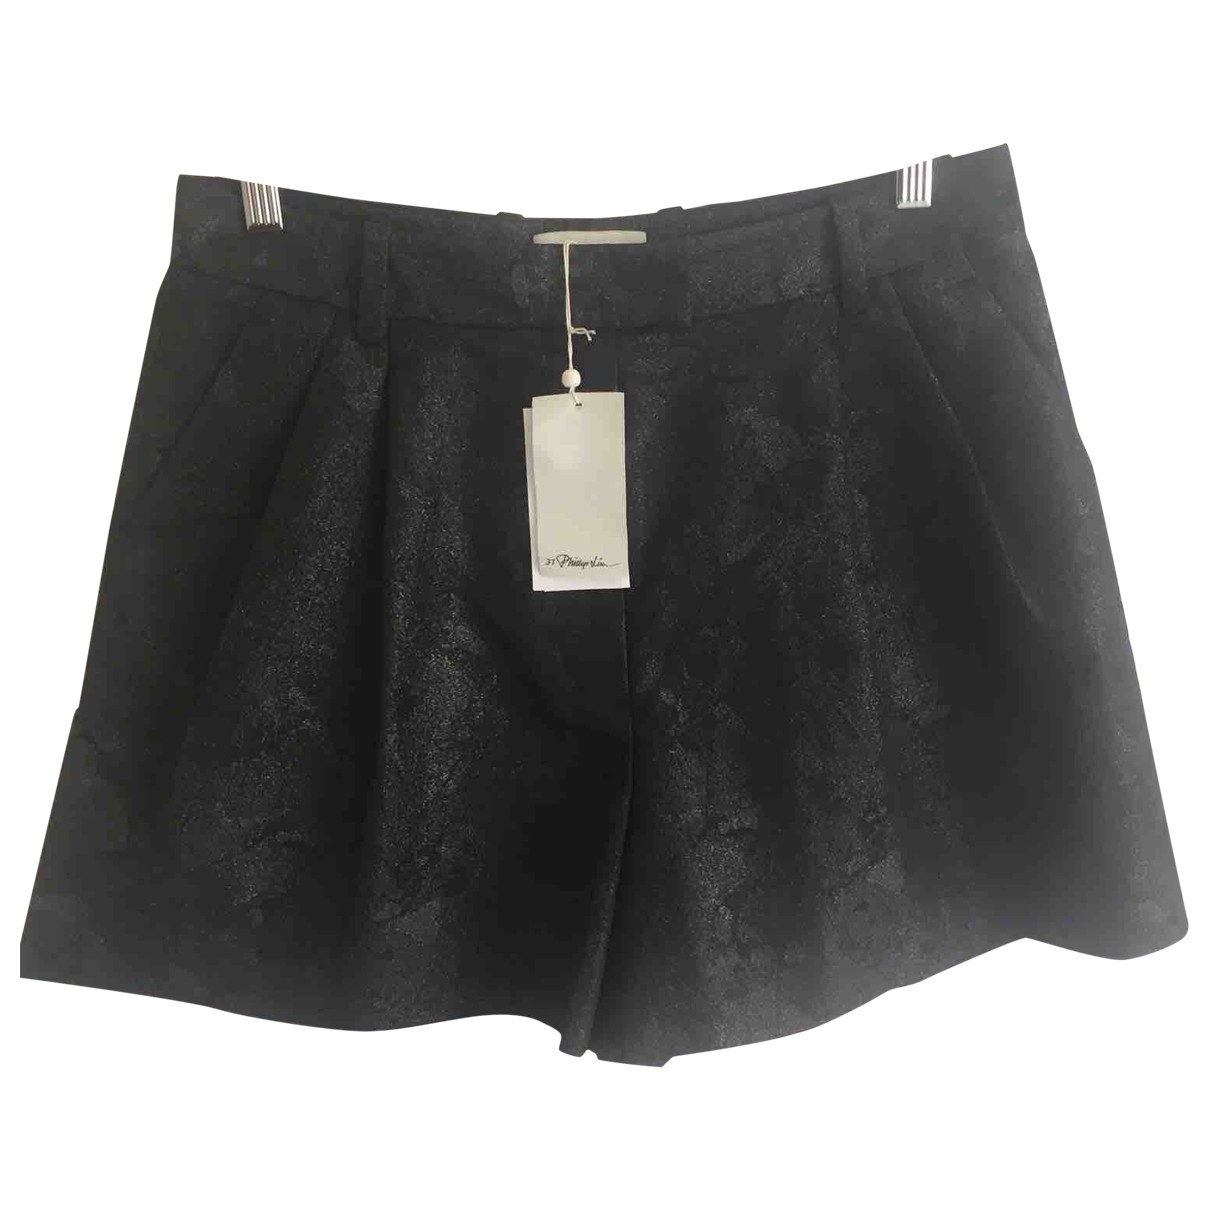 3.1 Phillip Lim \N Grey Shorts for Women 6 US